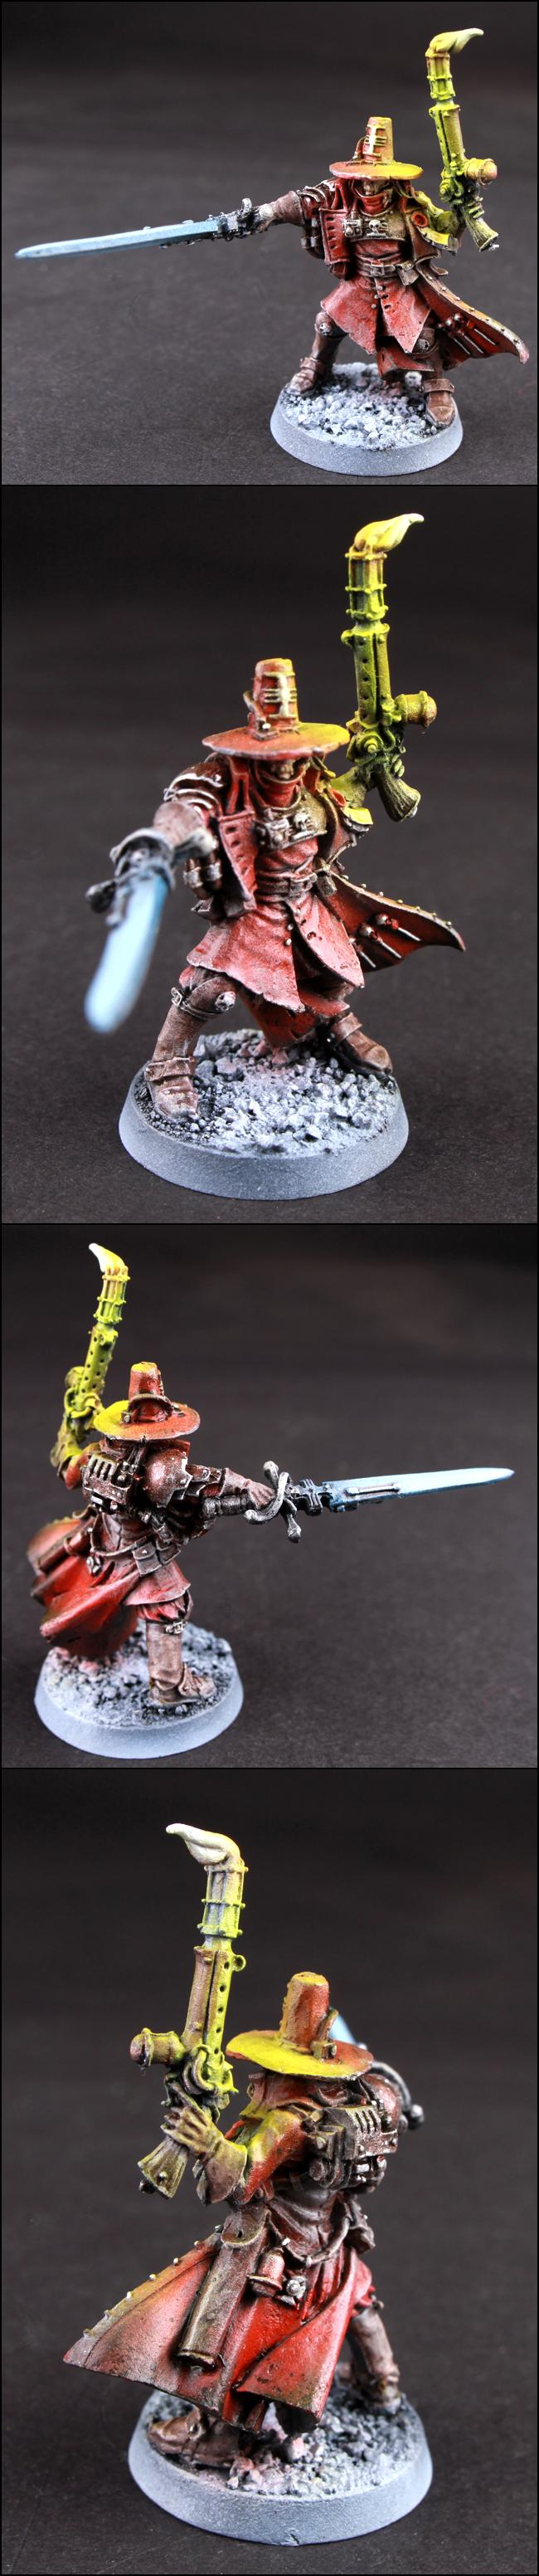 Inquisitor, Object Source Lighting, Ordo Heredicus, Witch Hunters